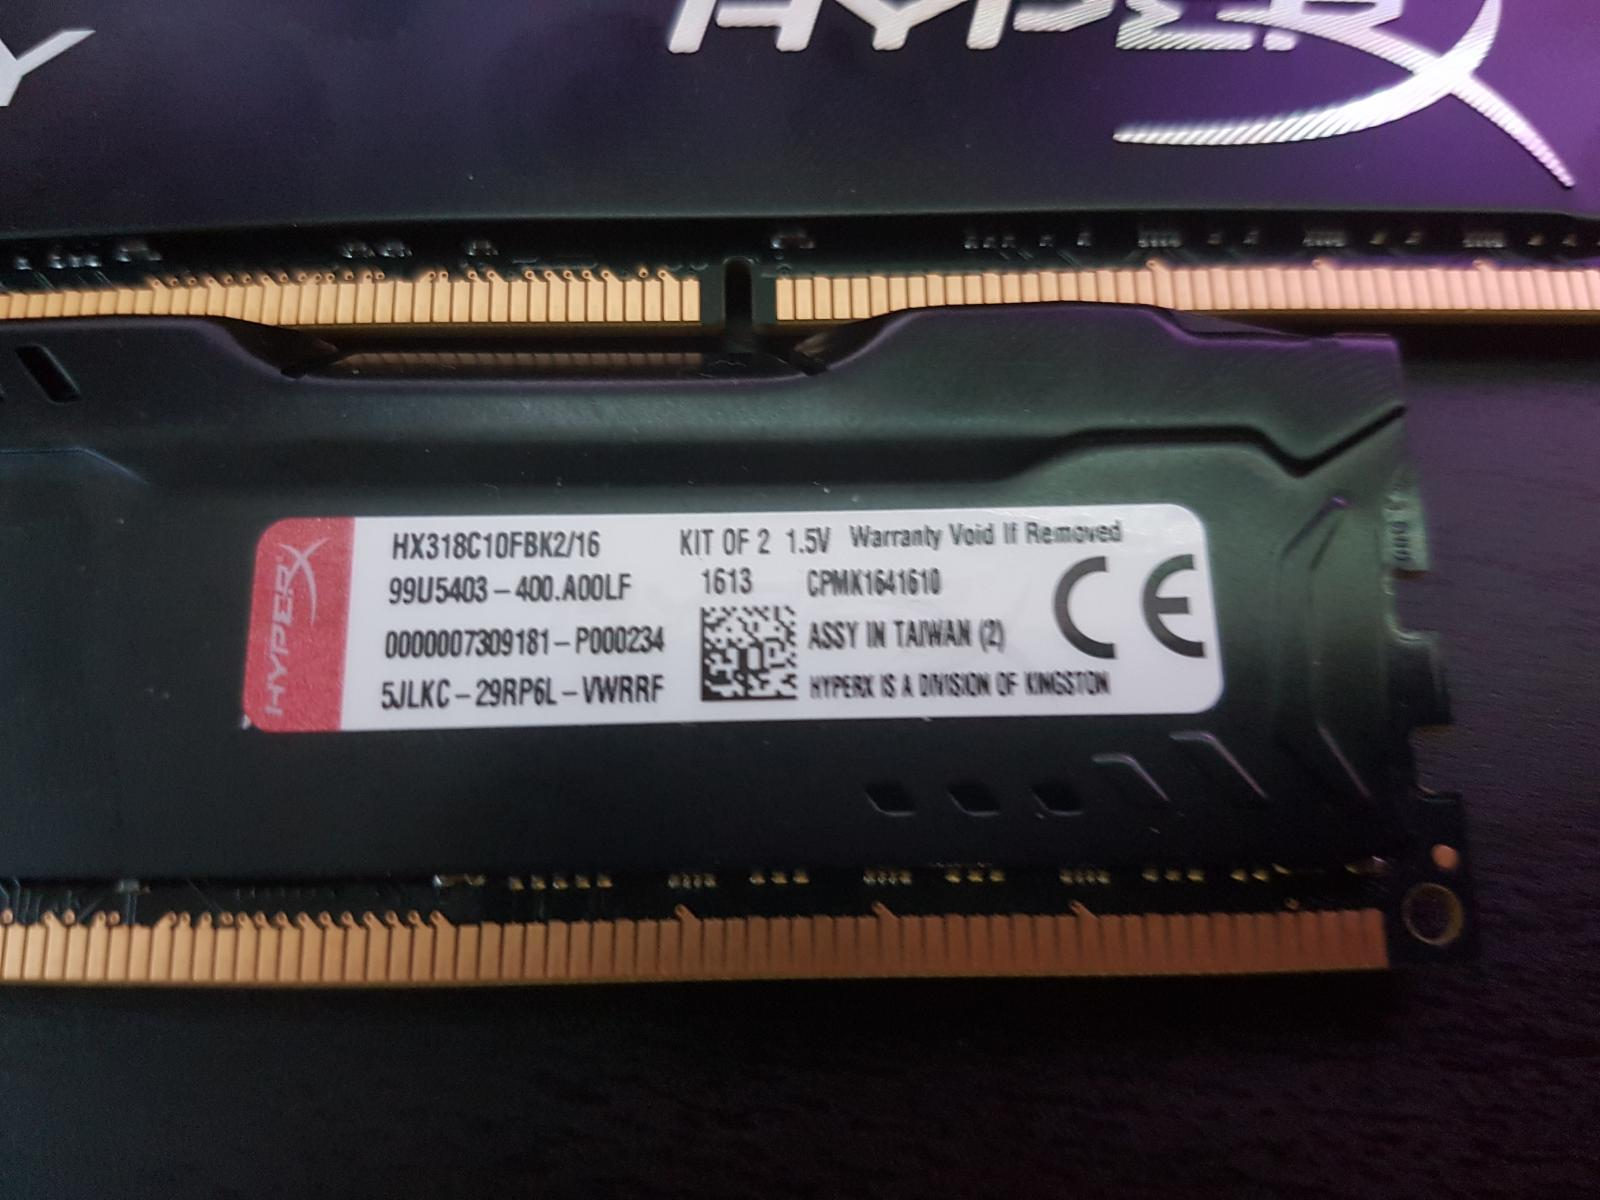 Photo of 32GB (4 x 8GB) HyperX Fury 240 pin DDR3 SDRAM 1866